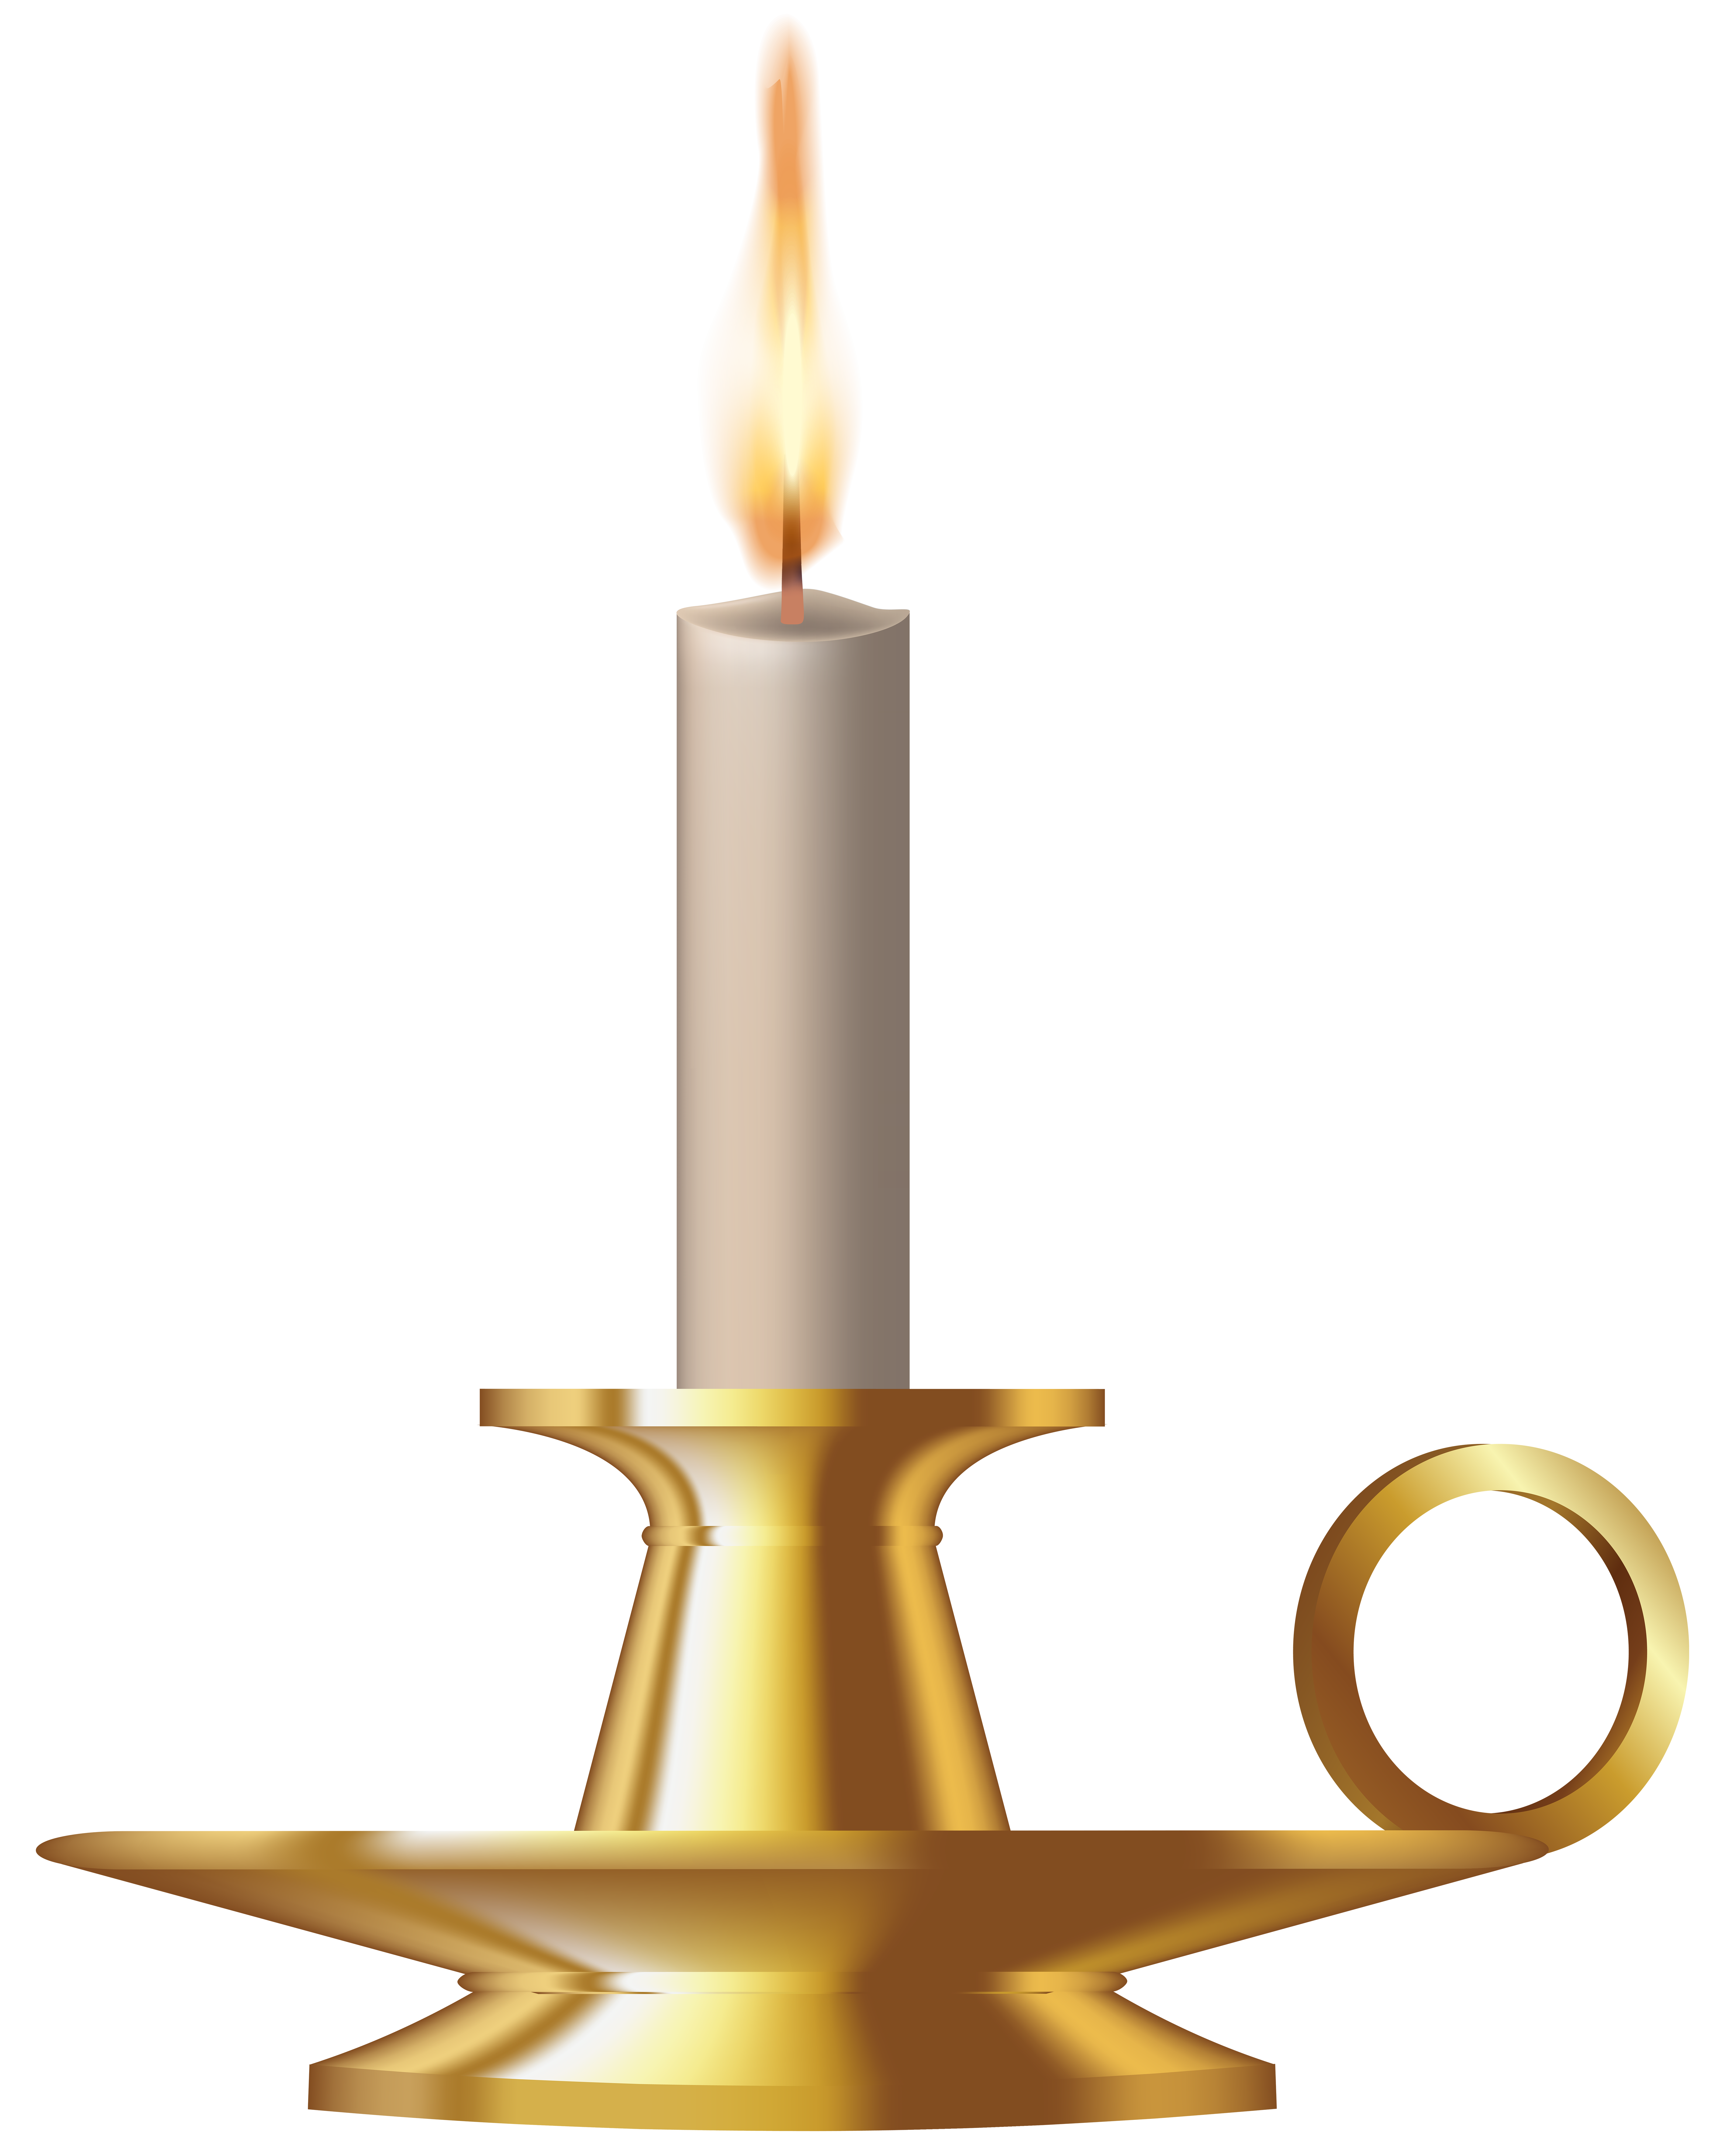 Candle clipart candlestick Best Clip Clip Candlestick PNG